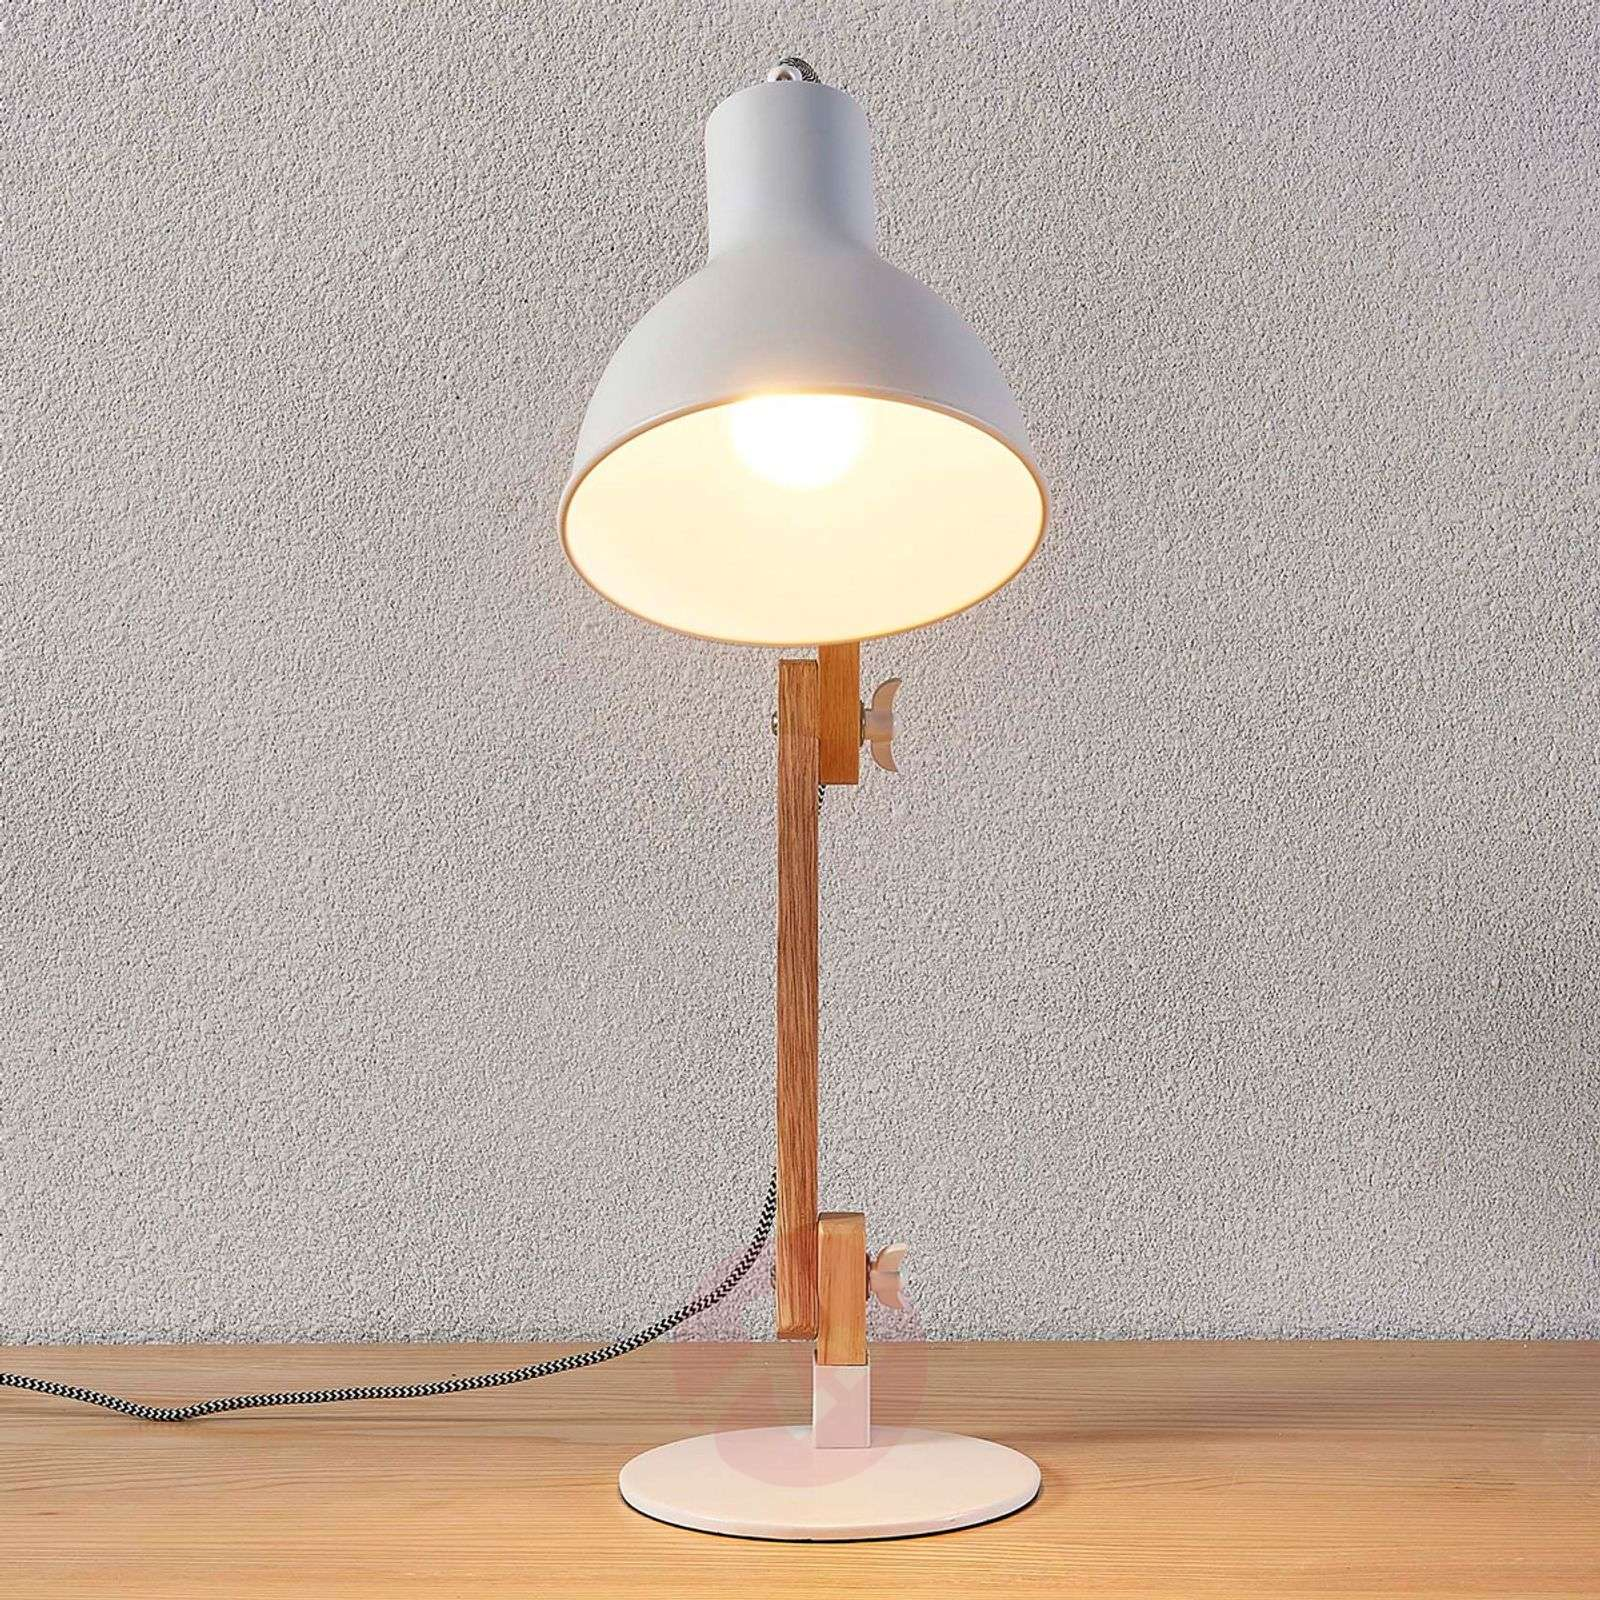 Wood desk lamp Shivanja with white lampshade | Lights.co.uk